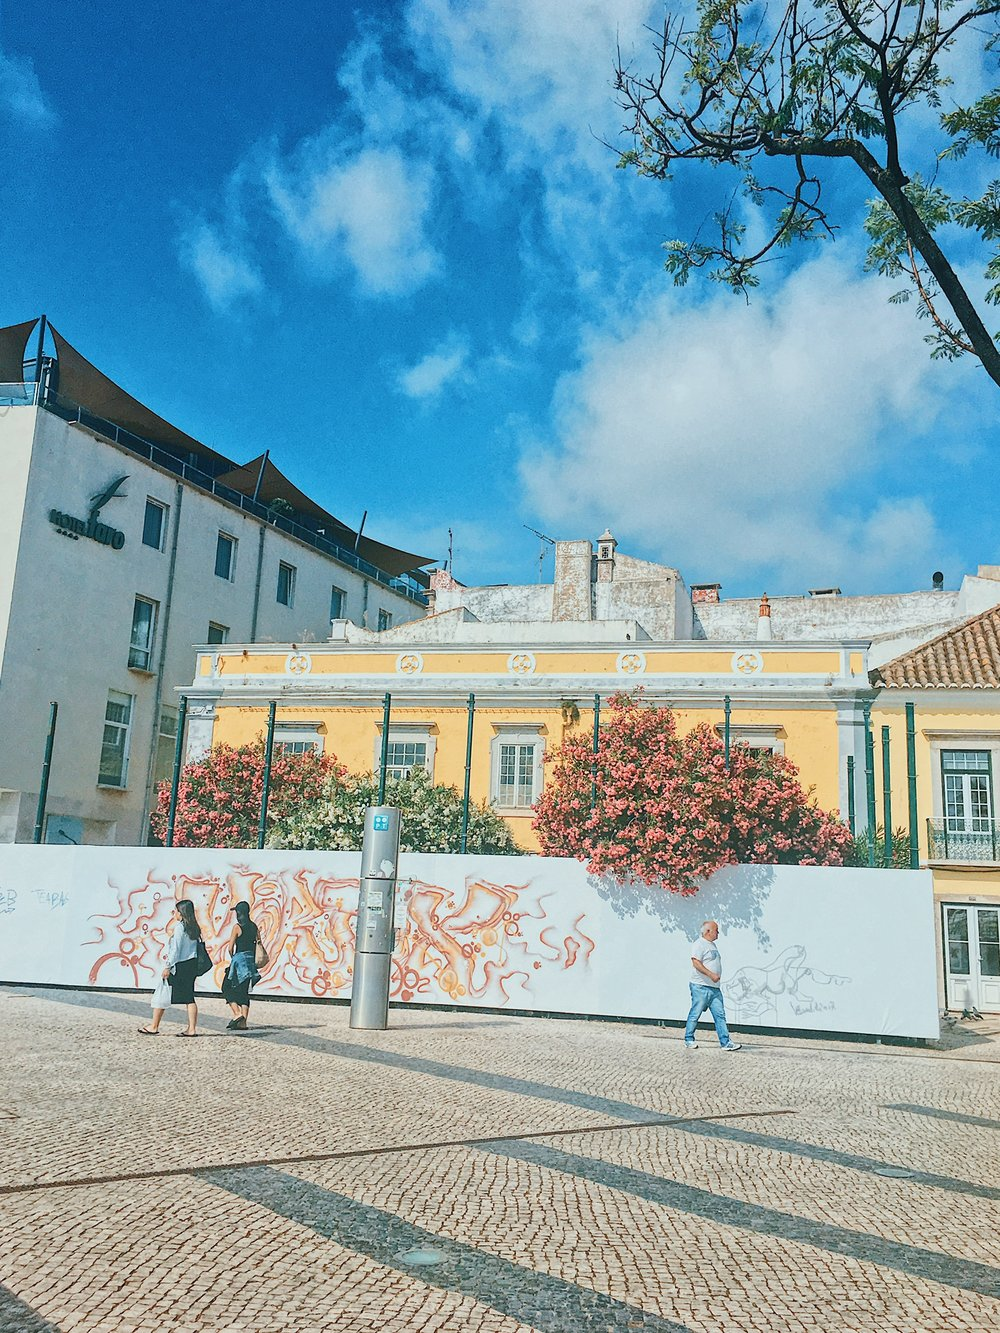 Colorful buildings and graffiti in Faro by the port